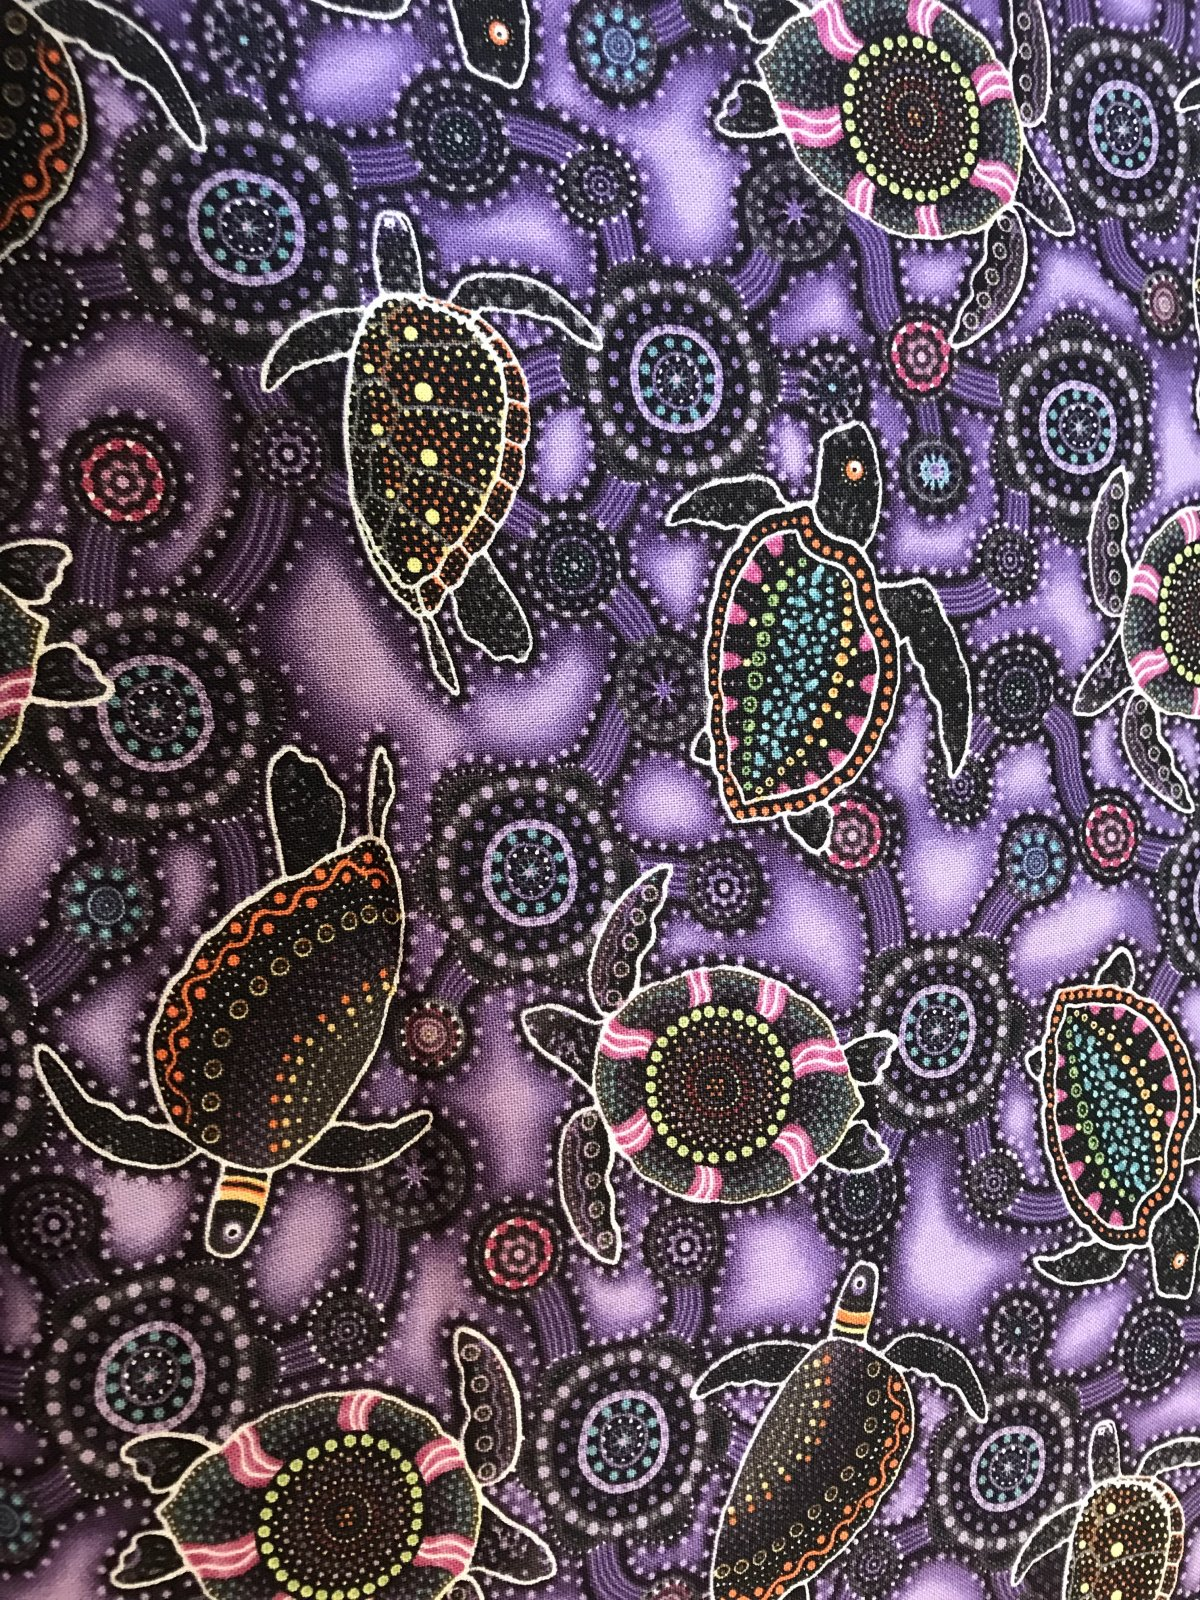 Down Under Cotton - sea turtles OA6011601 purple